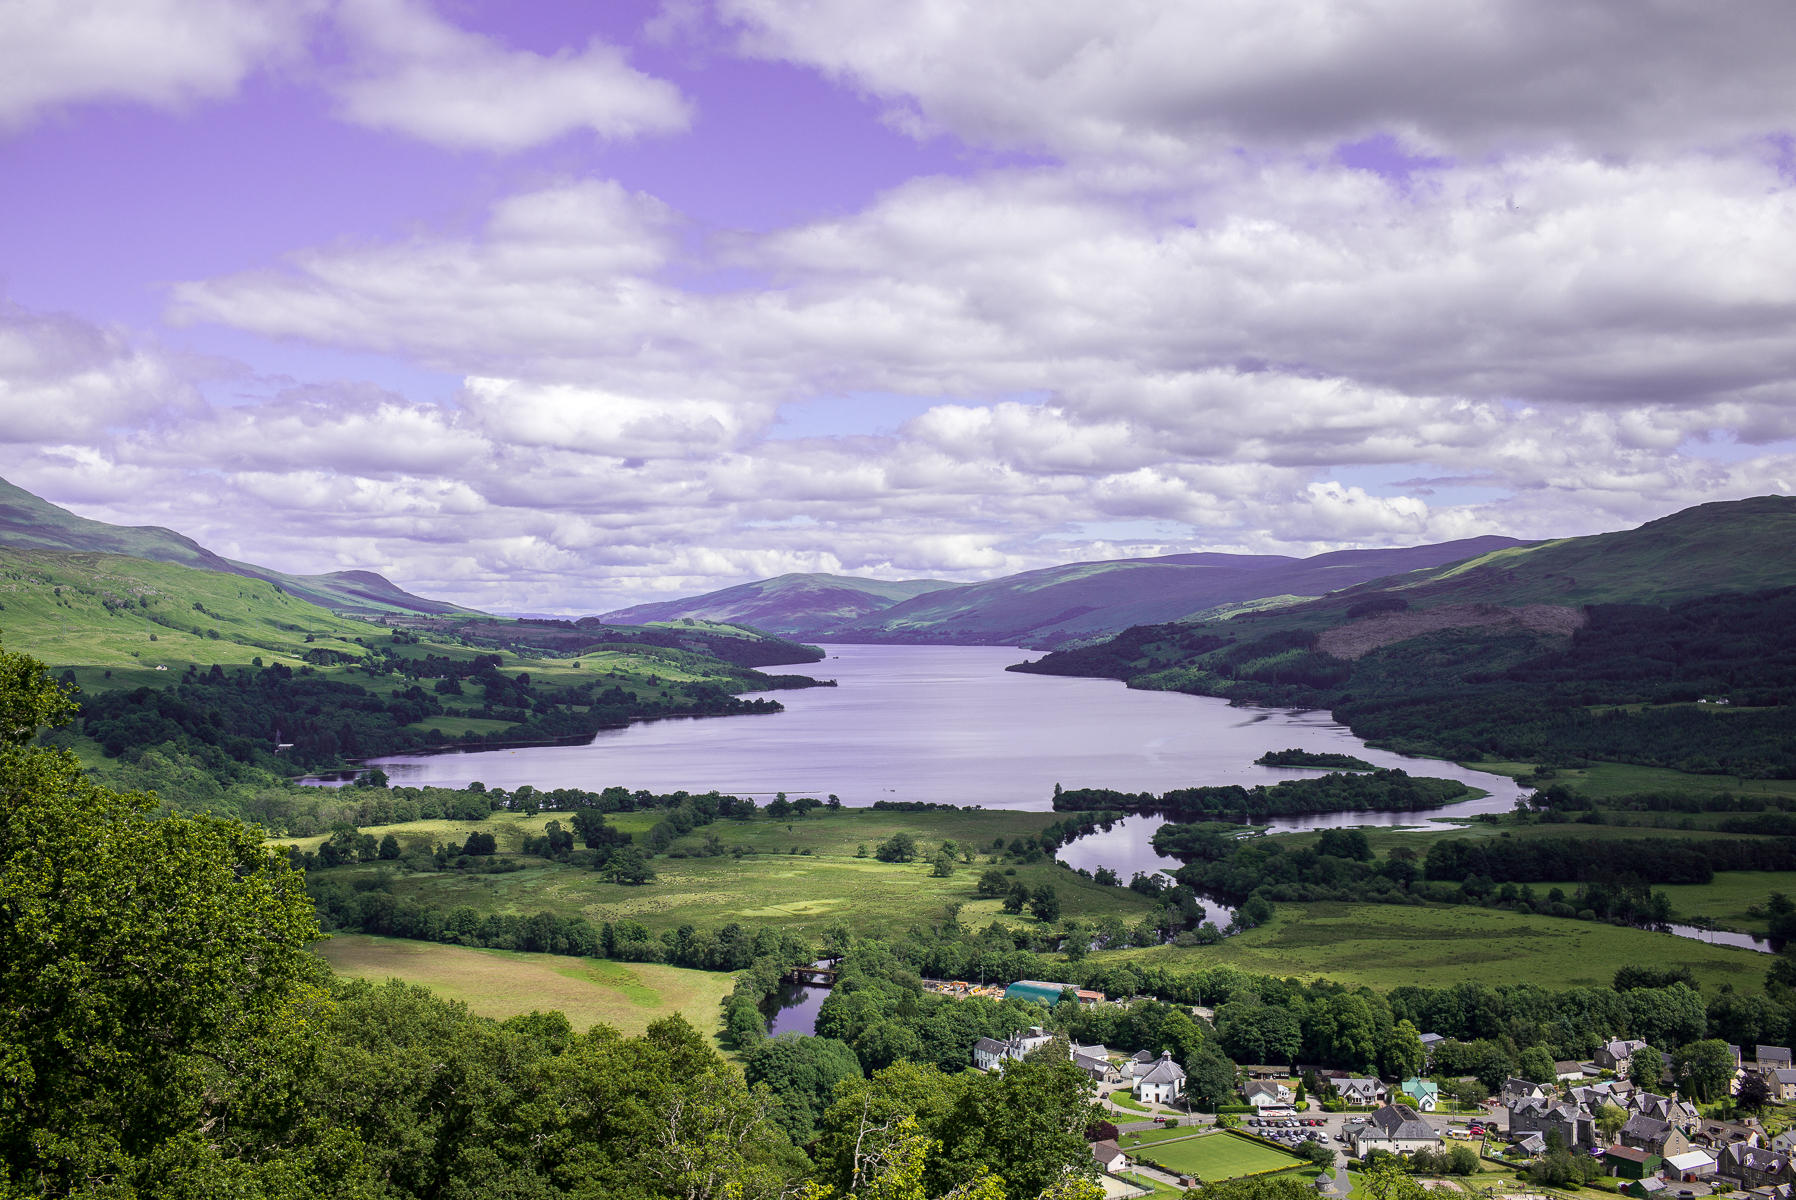 Killin and Loch Tay, Scotland : landscapes : TIMOTHY FLOYD PHOTOGRAPHER, NATURE PHOTOGRAPHY, PHOTO ESSAYS, PHOTOJOURNALISM